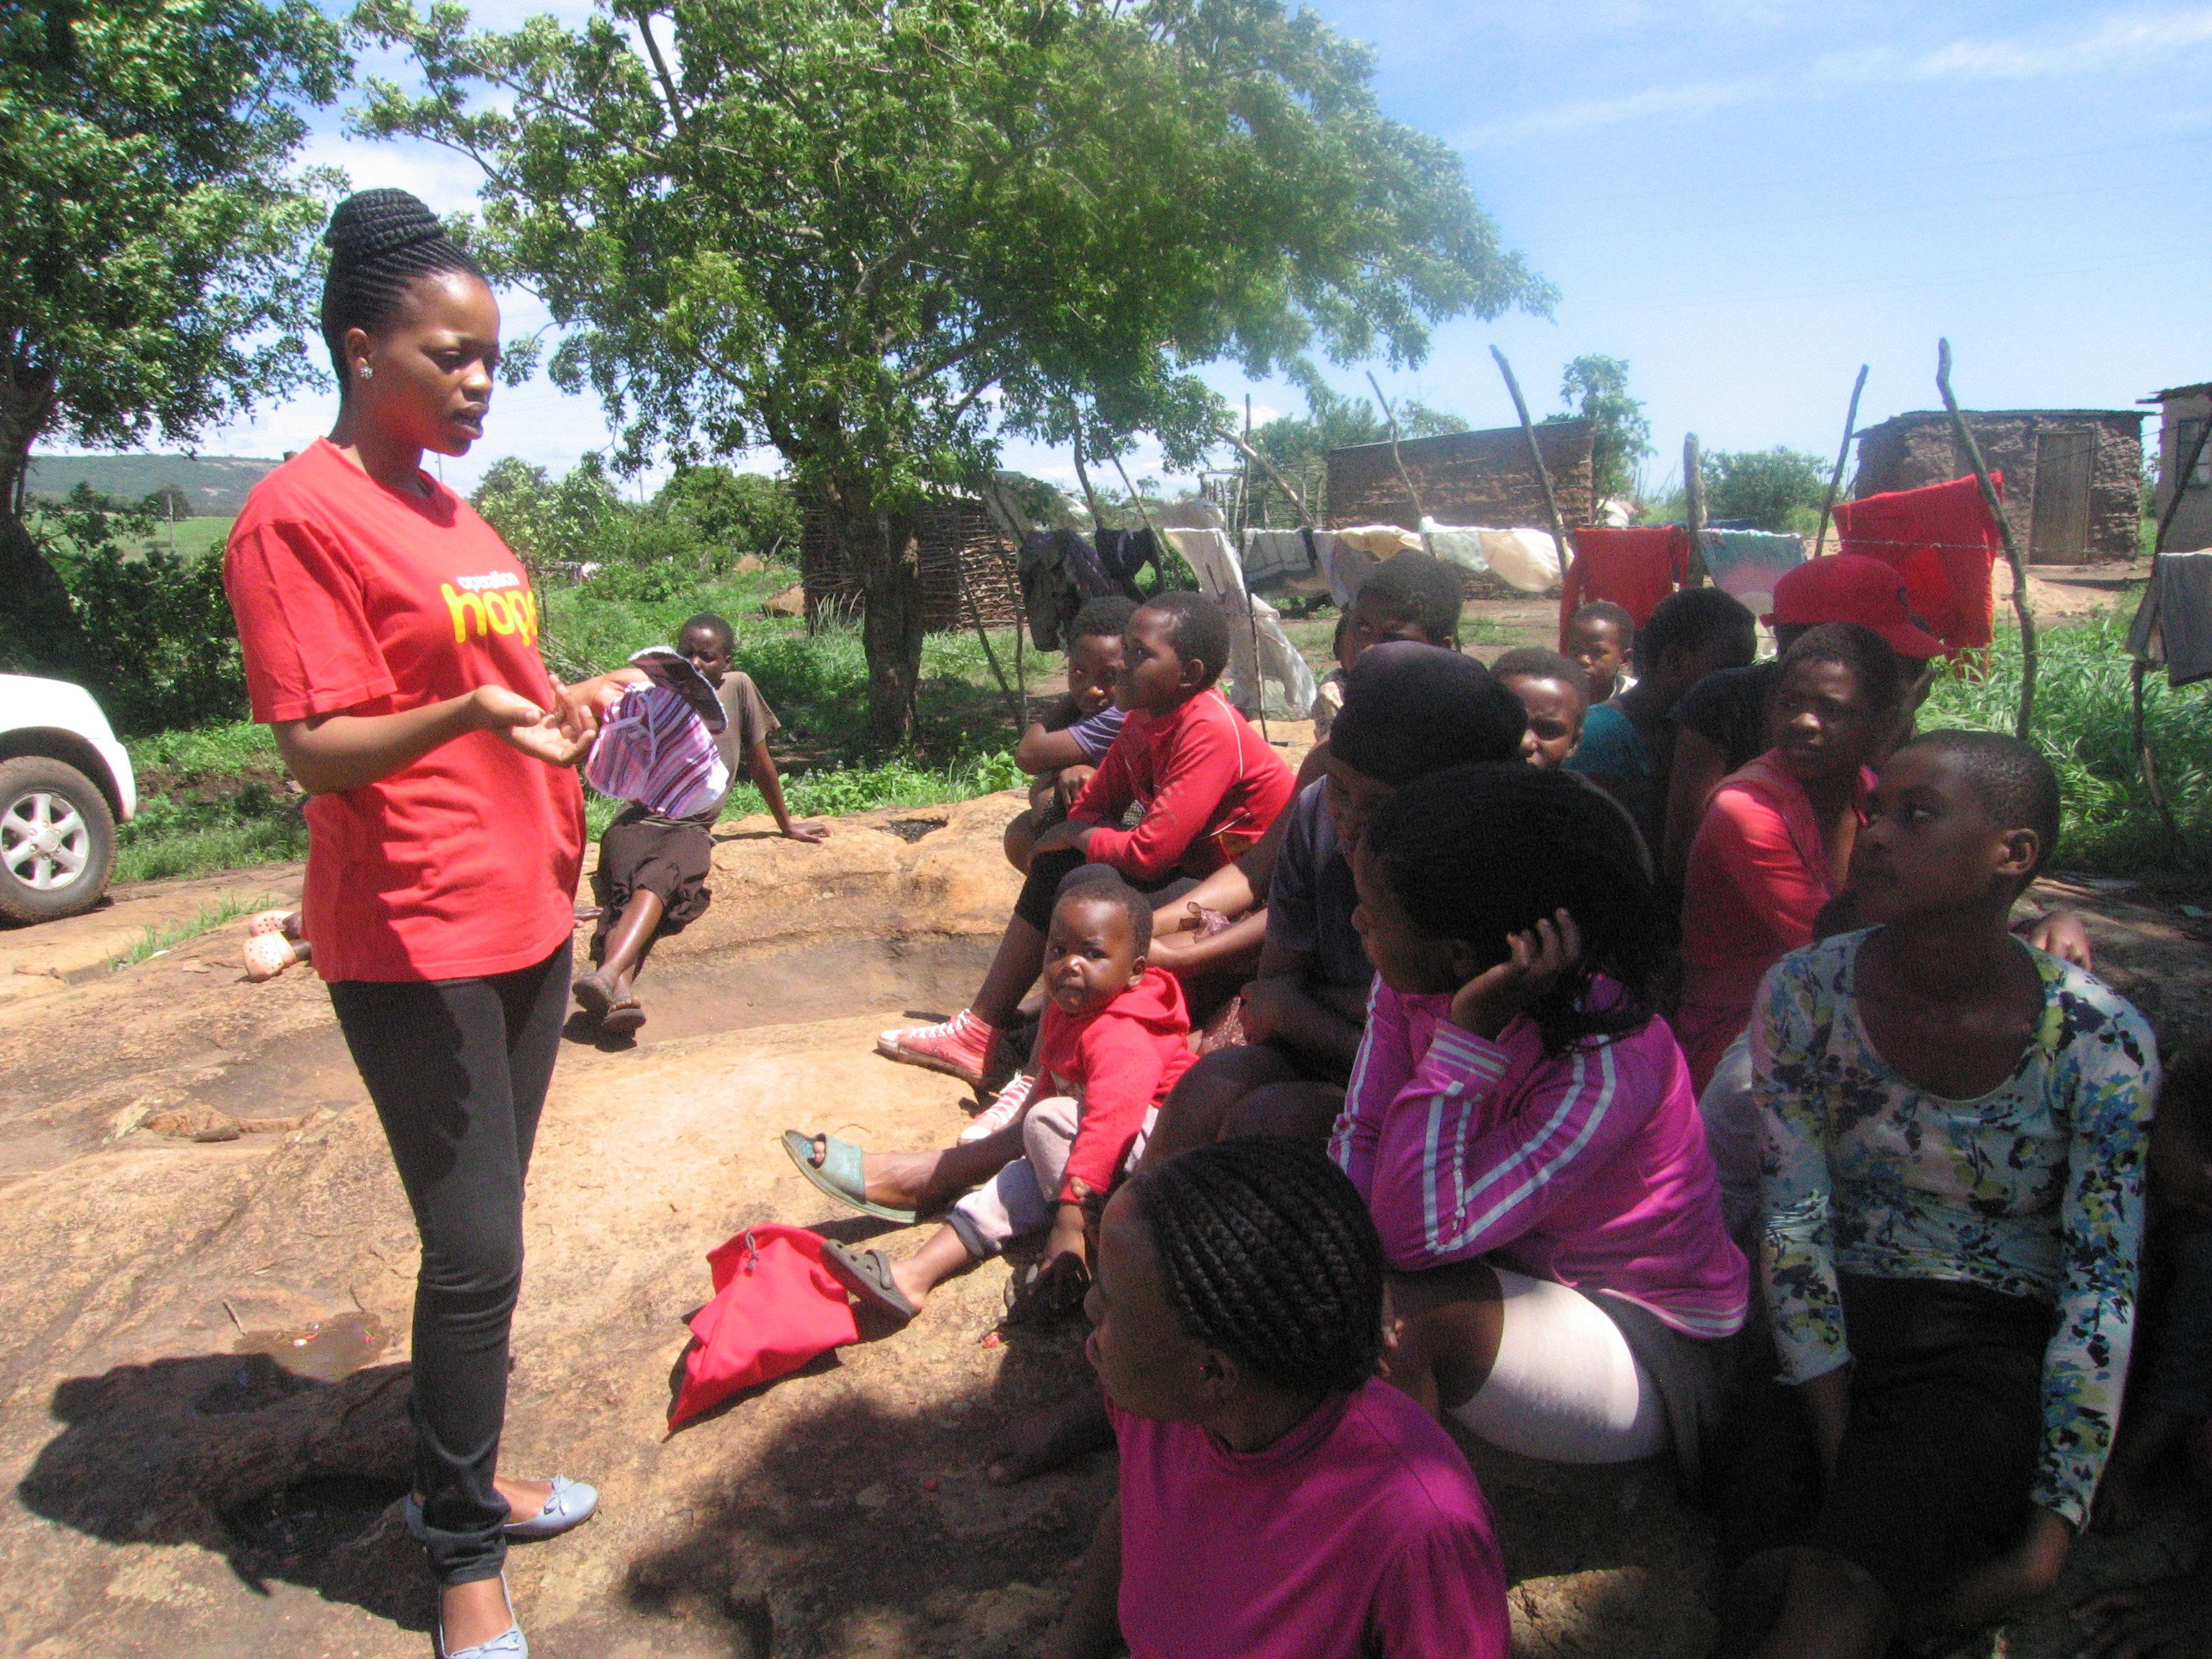 A young woman stands in front of several young girls sharing information about female hygiene.